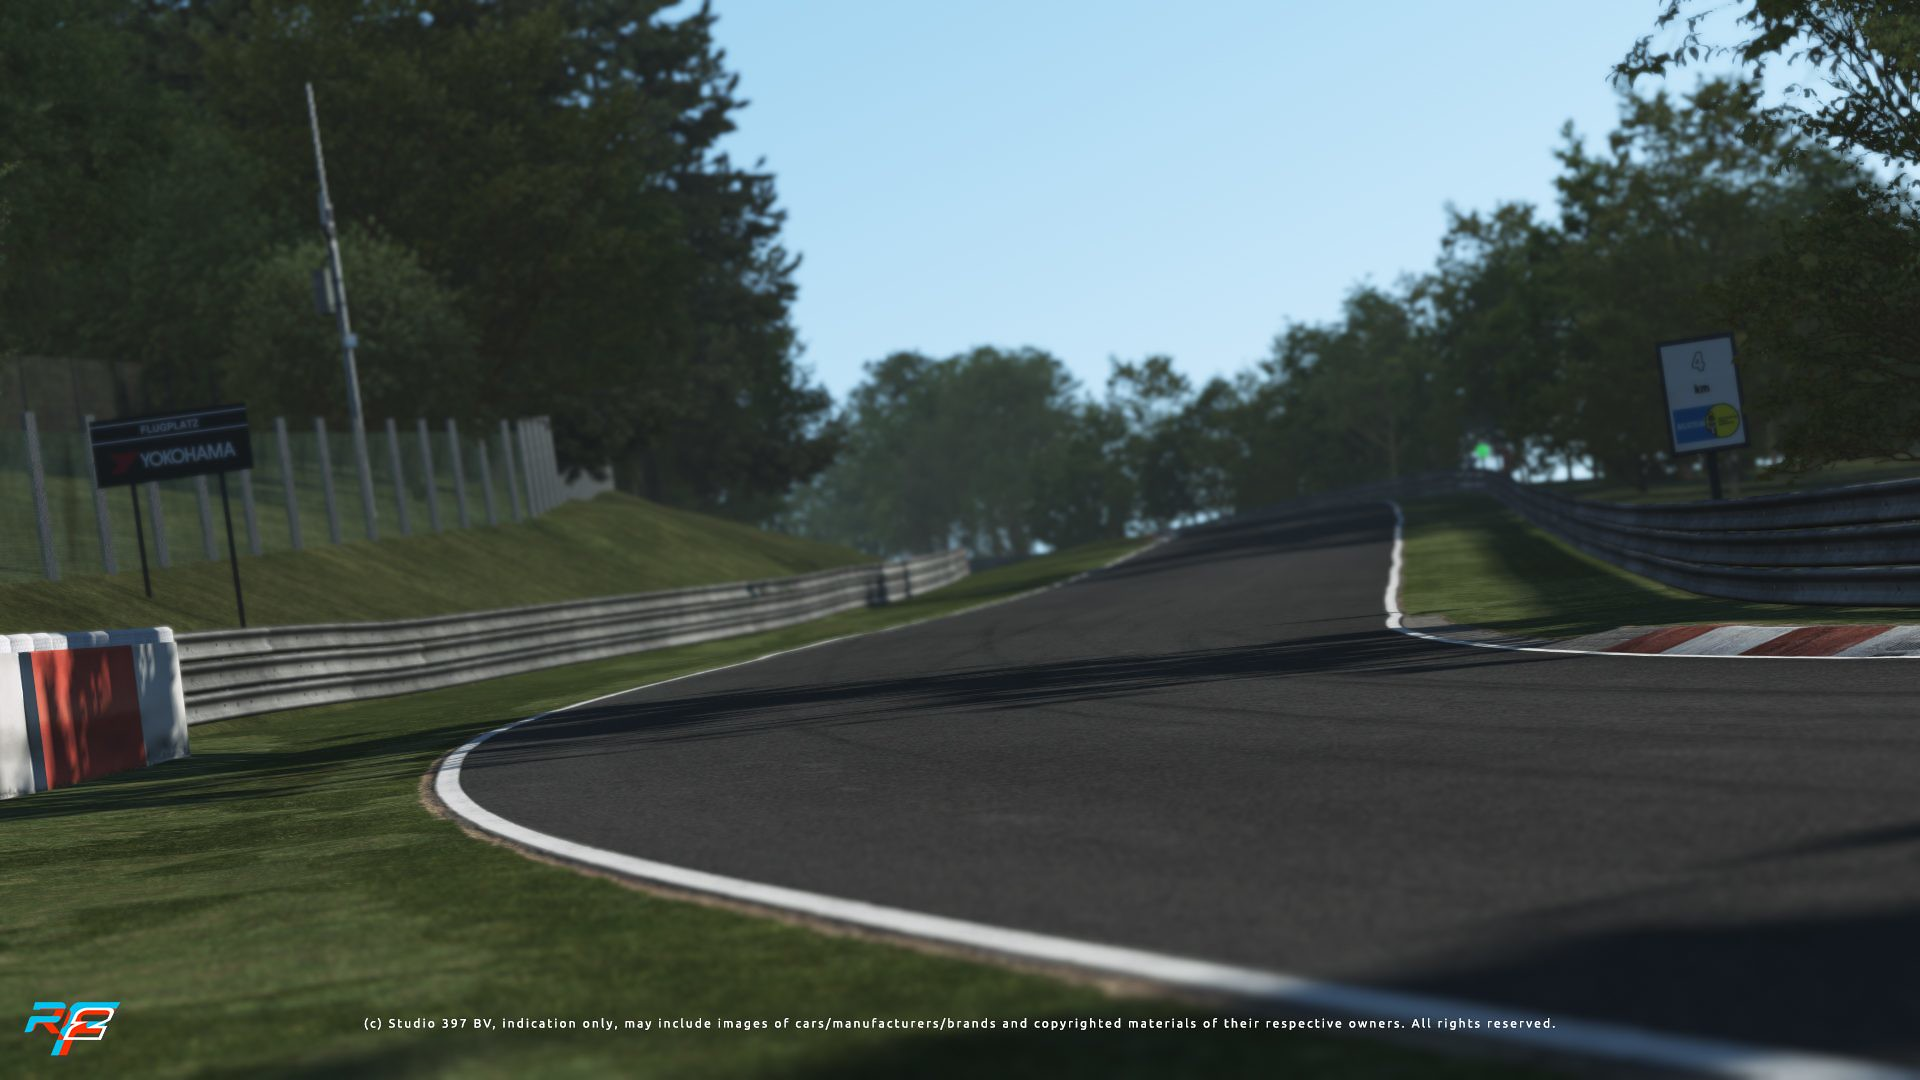 nordschleife_guide_07-1920x1080